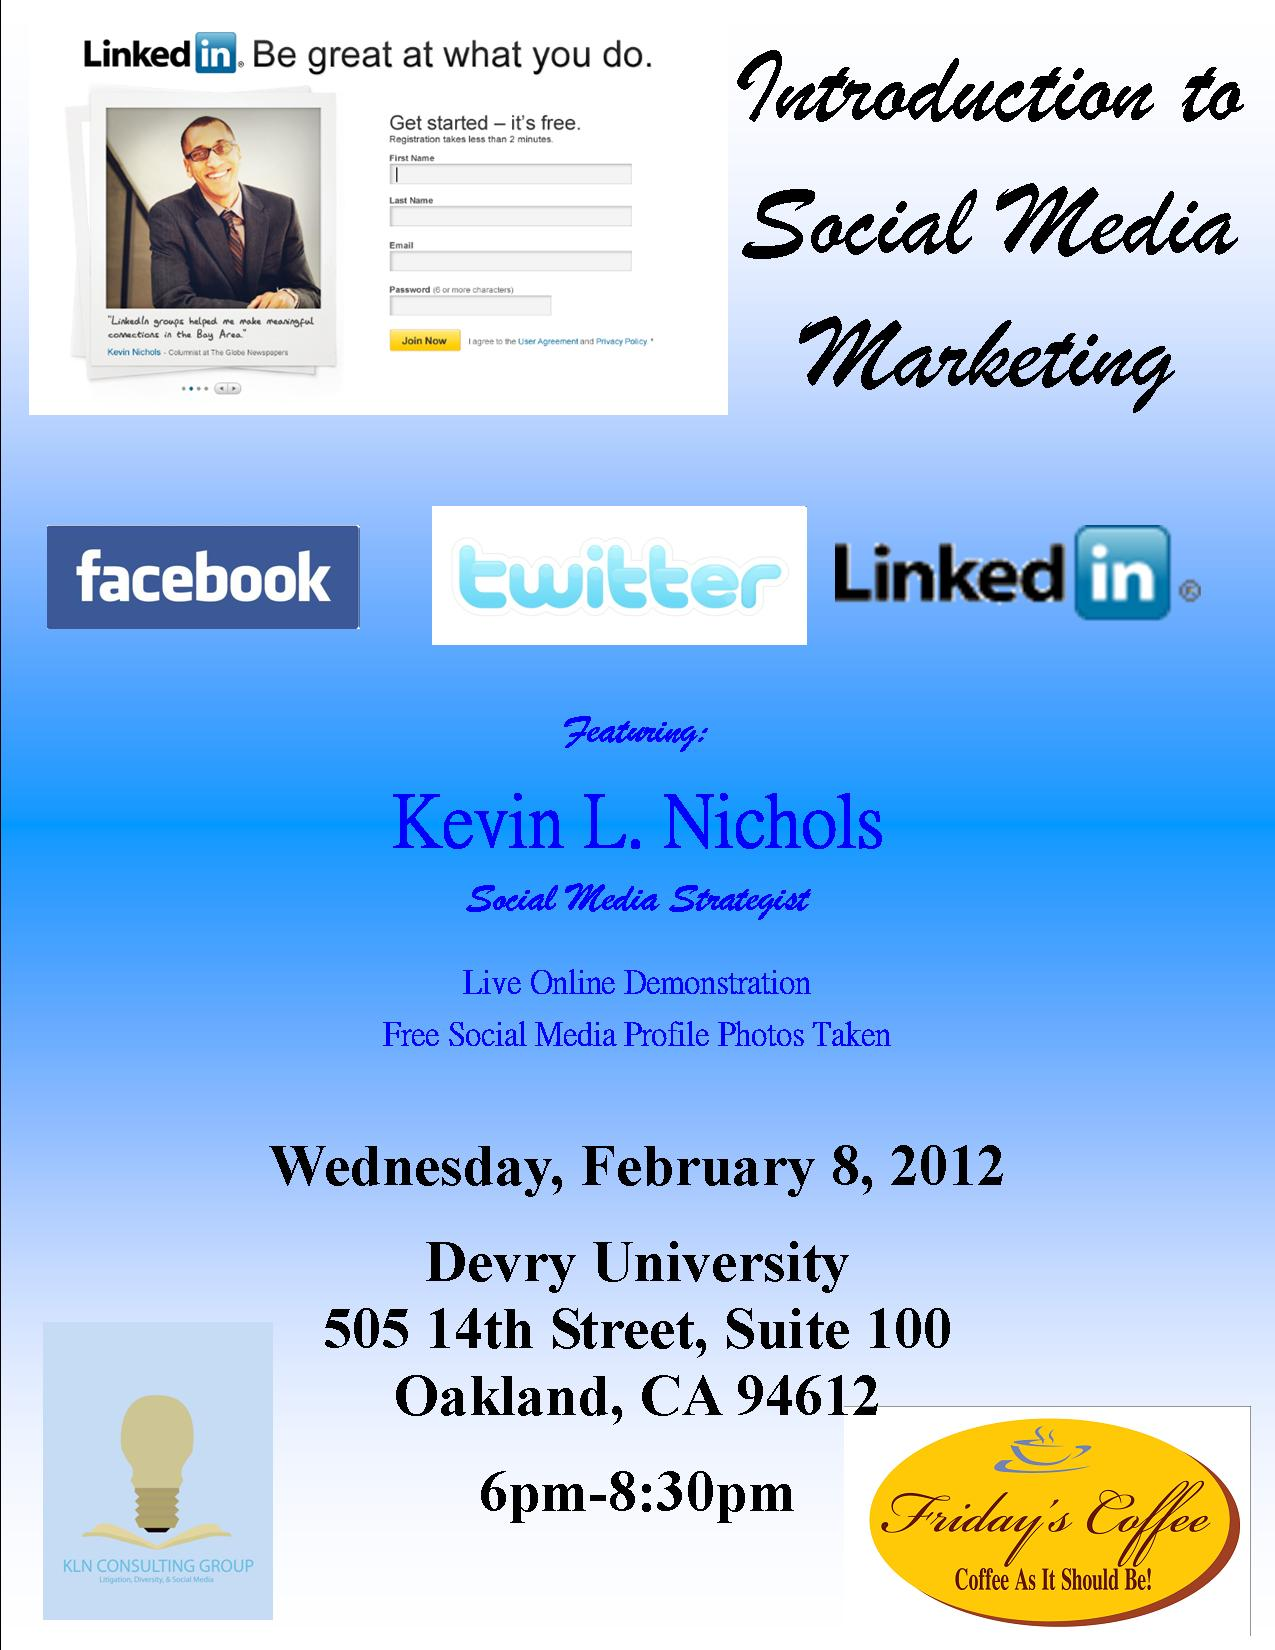 Facebook Kln Consulting Group